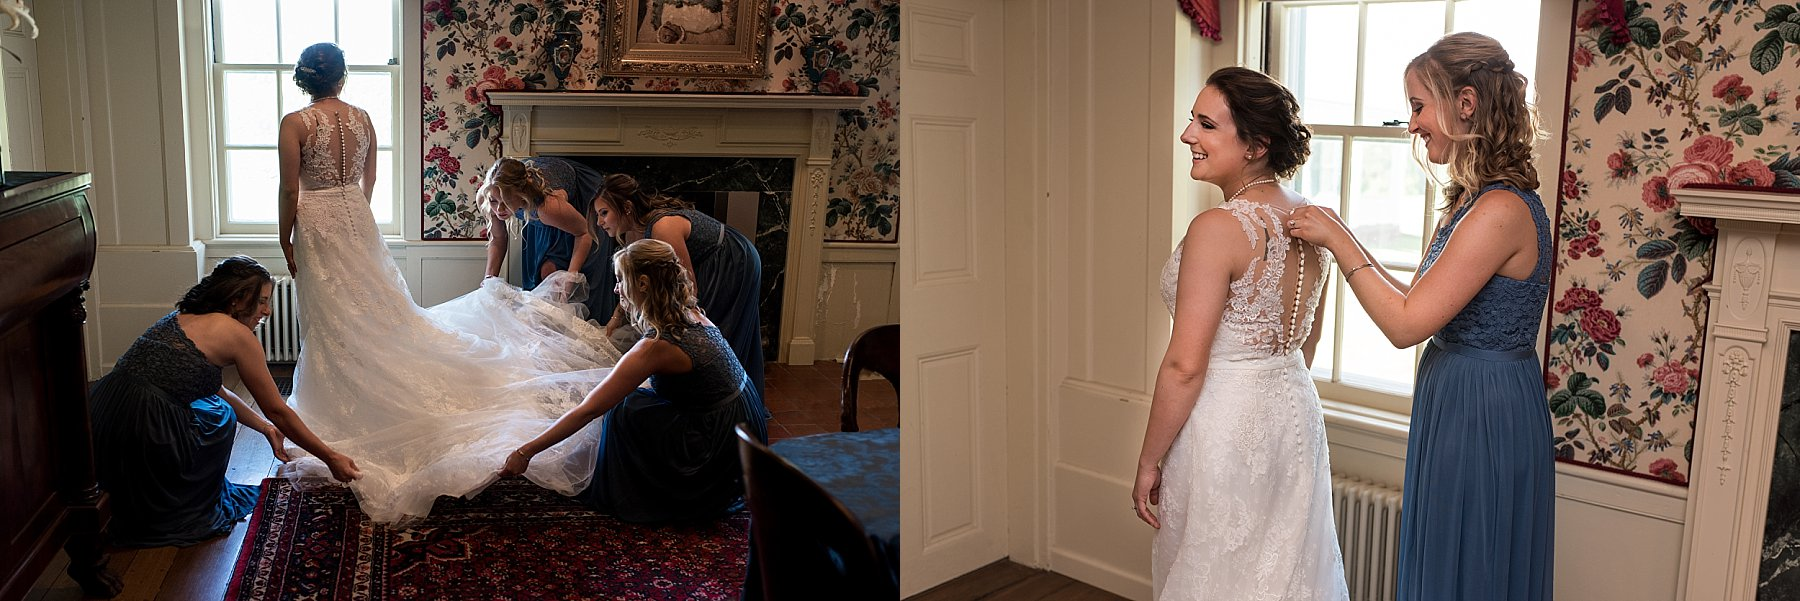 Bride getting ready in bridal suite at the Hillstead Museum in Connecticut